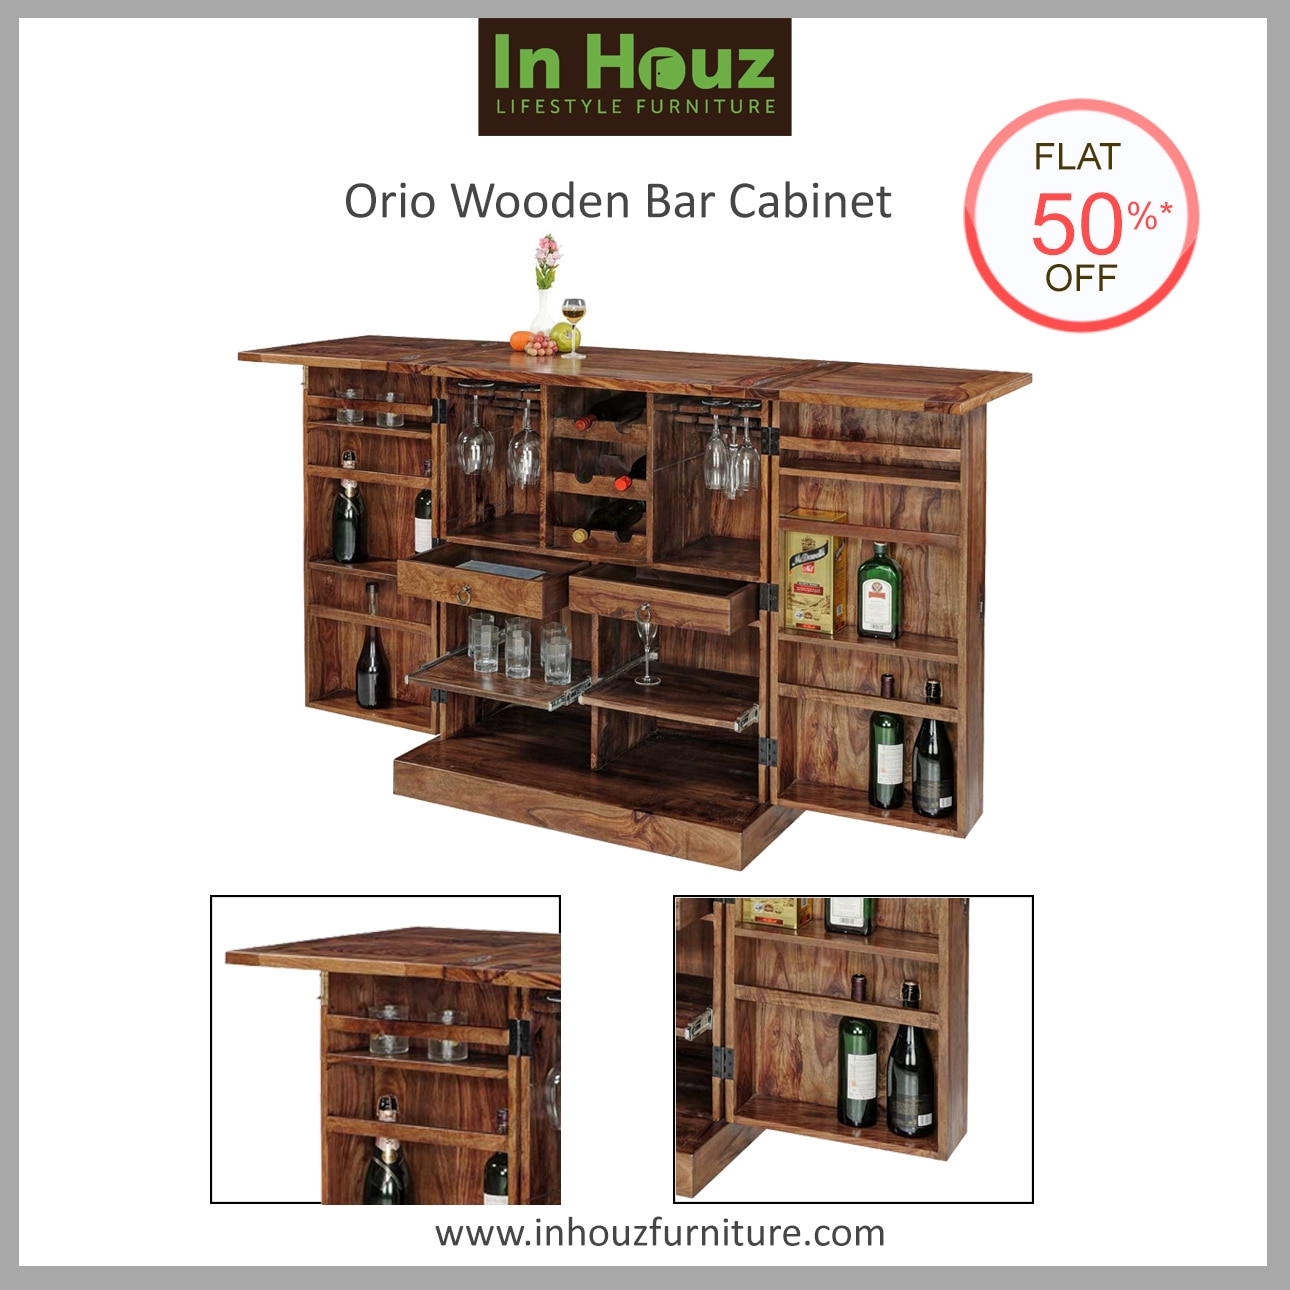 Bring Home Bar Cabinets from In Houz Furniture to serve in Style. The elegant finish & sophisticated craft will perfectly define your class.  #WoodenBarCabinet #BarCabinetDesigns #BarCabinetIndia #BarCabinetDesignsForSale #BarCabinetOnlineInIndia #SheeshamWoodBarCabinet #SolidwoodBarCabinet #Furniture For Sale #BarUnitDesigns #SolidwoodBarUnit #FurnitureManufacturersInIndia #Custom-madeFurnitureInHyderabad  View More Designs at www.inhouzfurniture.com